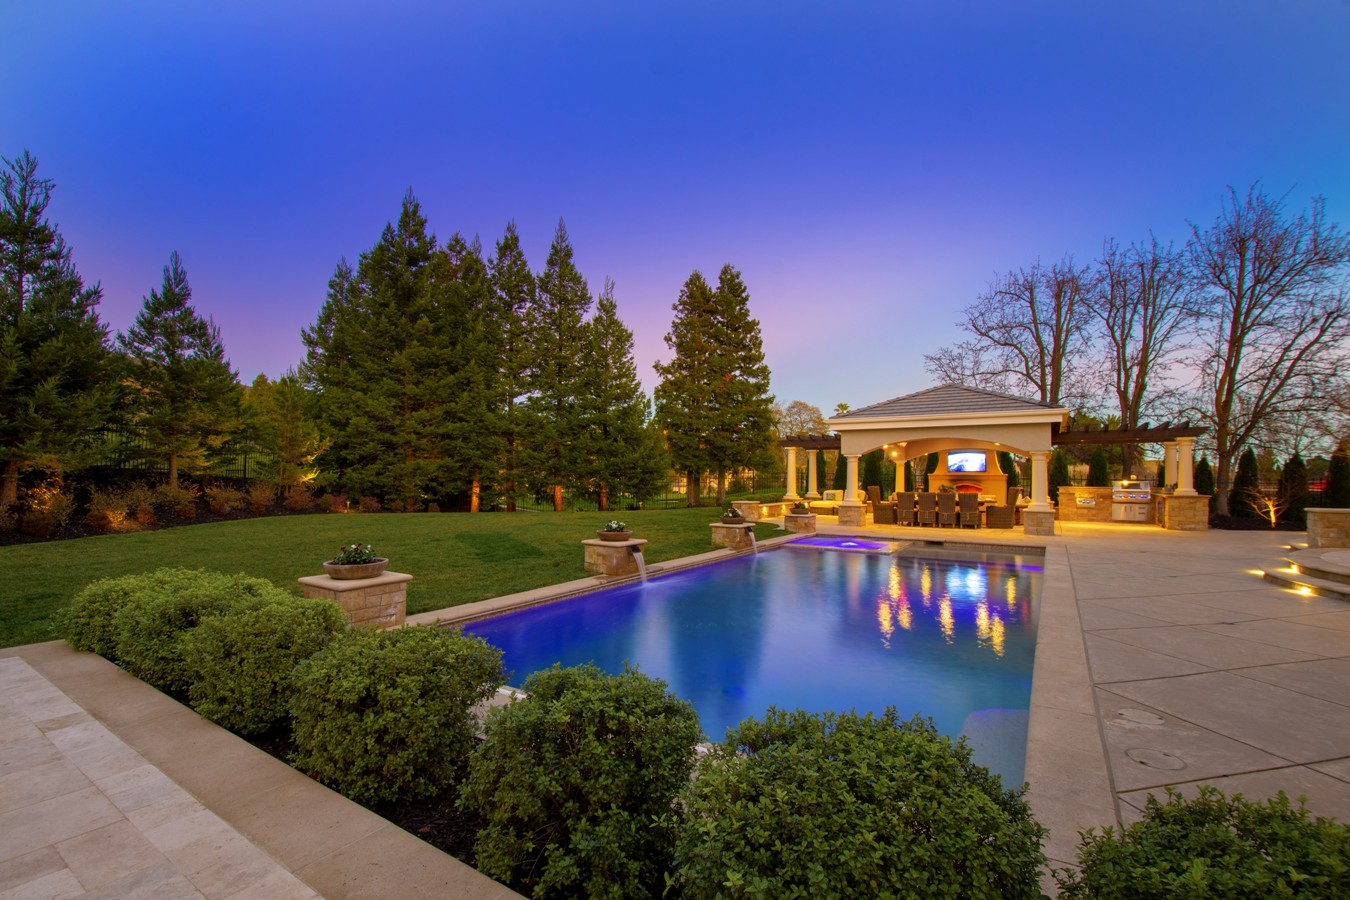 003_Back-yard-landscape-with-pool